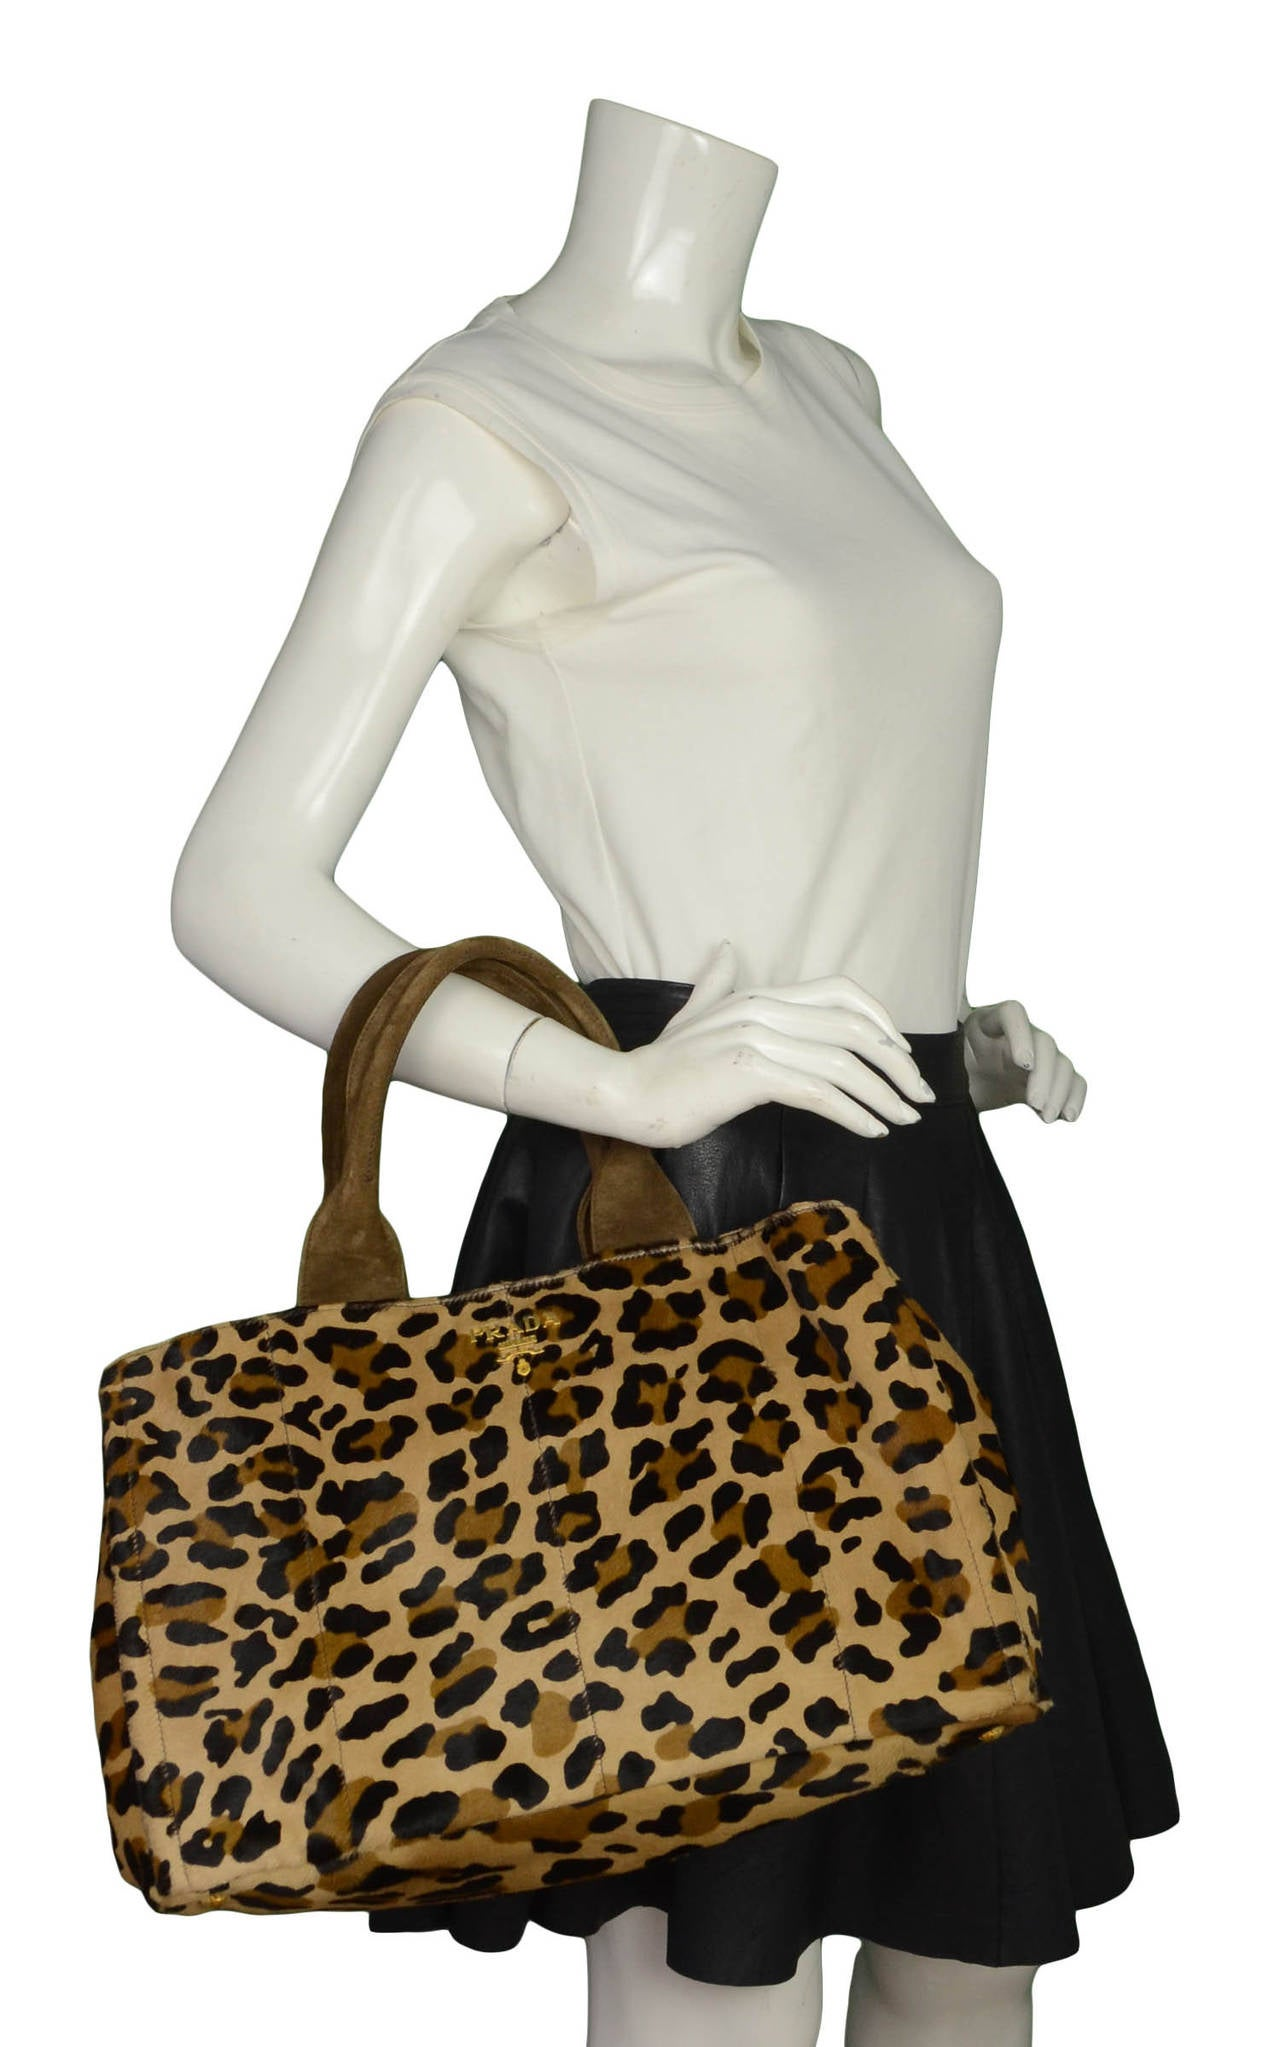 prada handbag blue - PRADA Brown and Black Leopard Print Pony Hair Tote Bag at 1stdibs